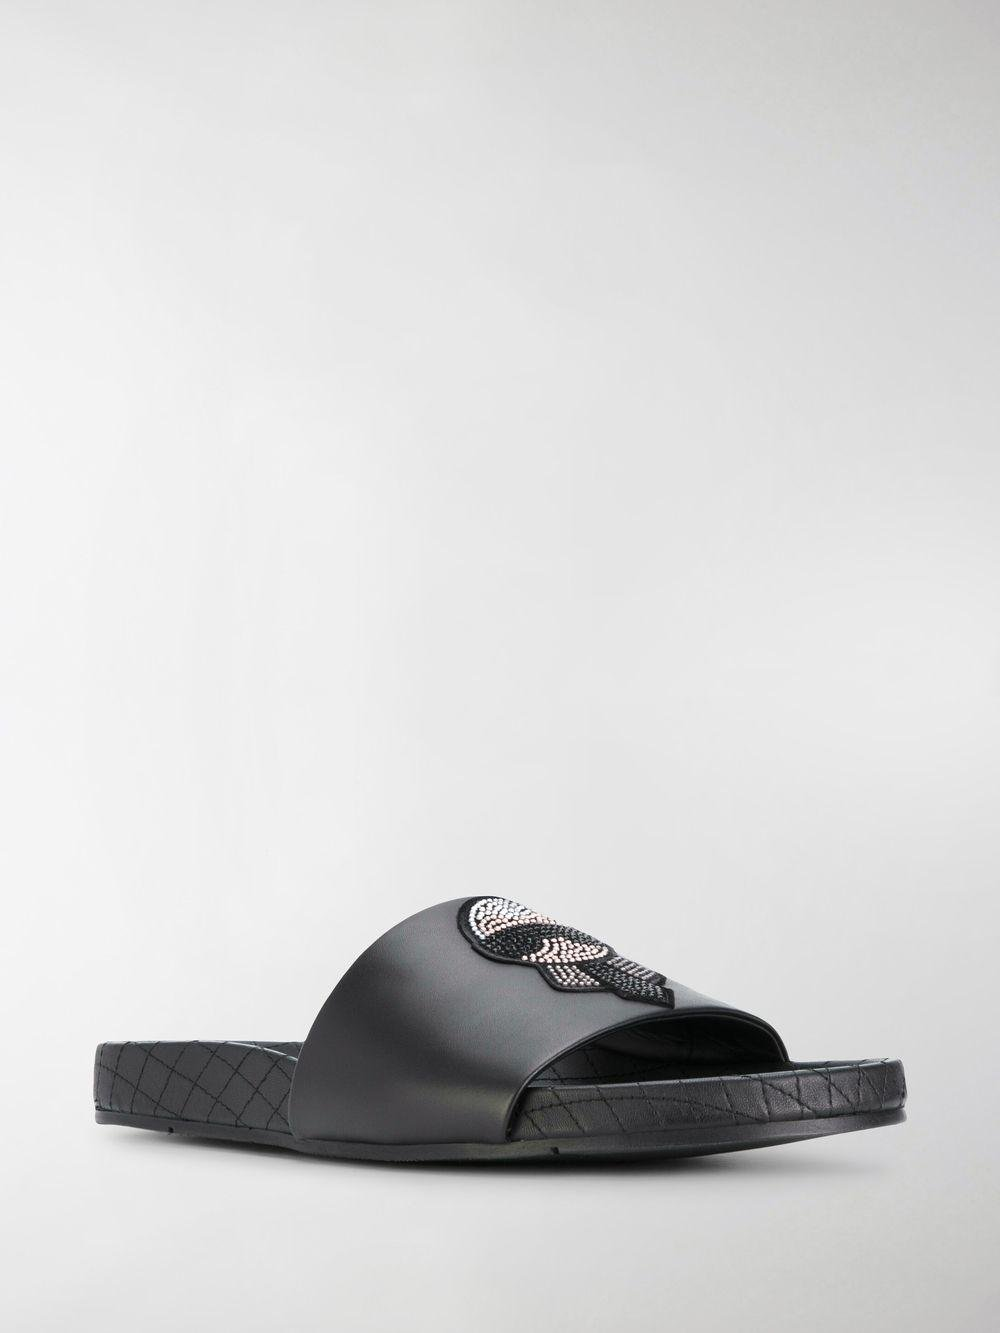 0bfb0efcf62b ... Fendi - Black Karlito Sliders for Men - Lyst. View fullscreen timeless  design 84c87 6d4b4 ...